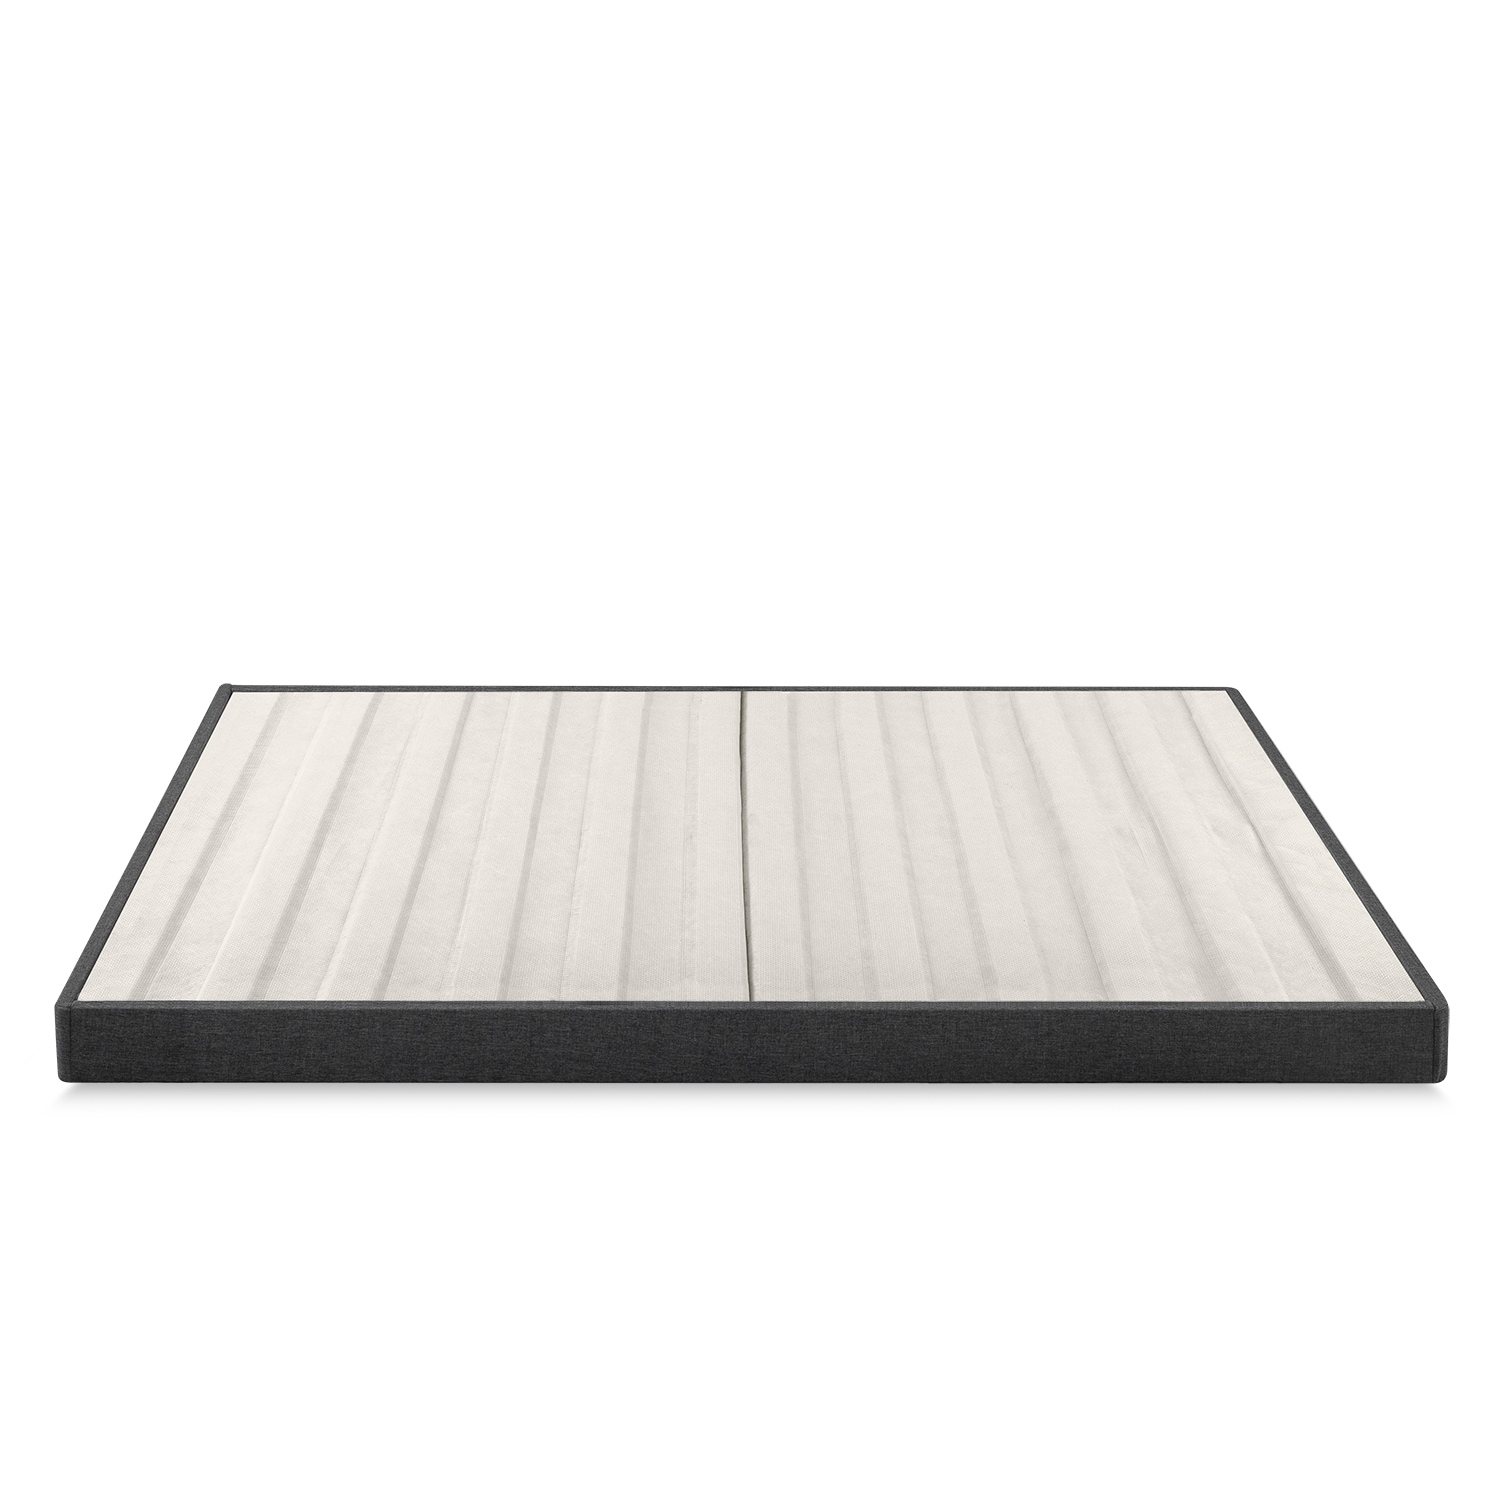 7.5 Inch Essential Box Spring Mattress Foundation Easy Assembly Required King